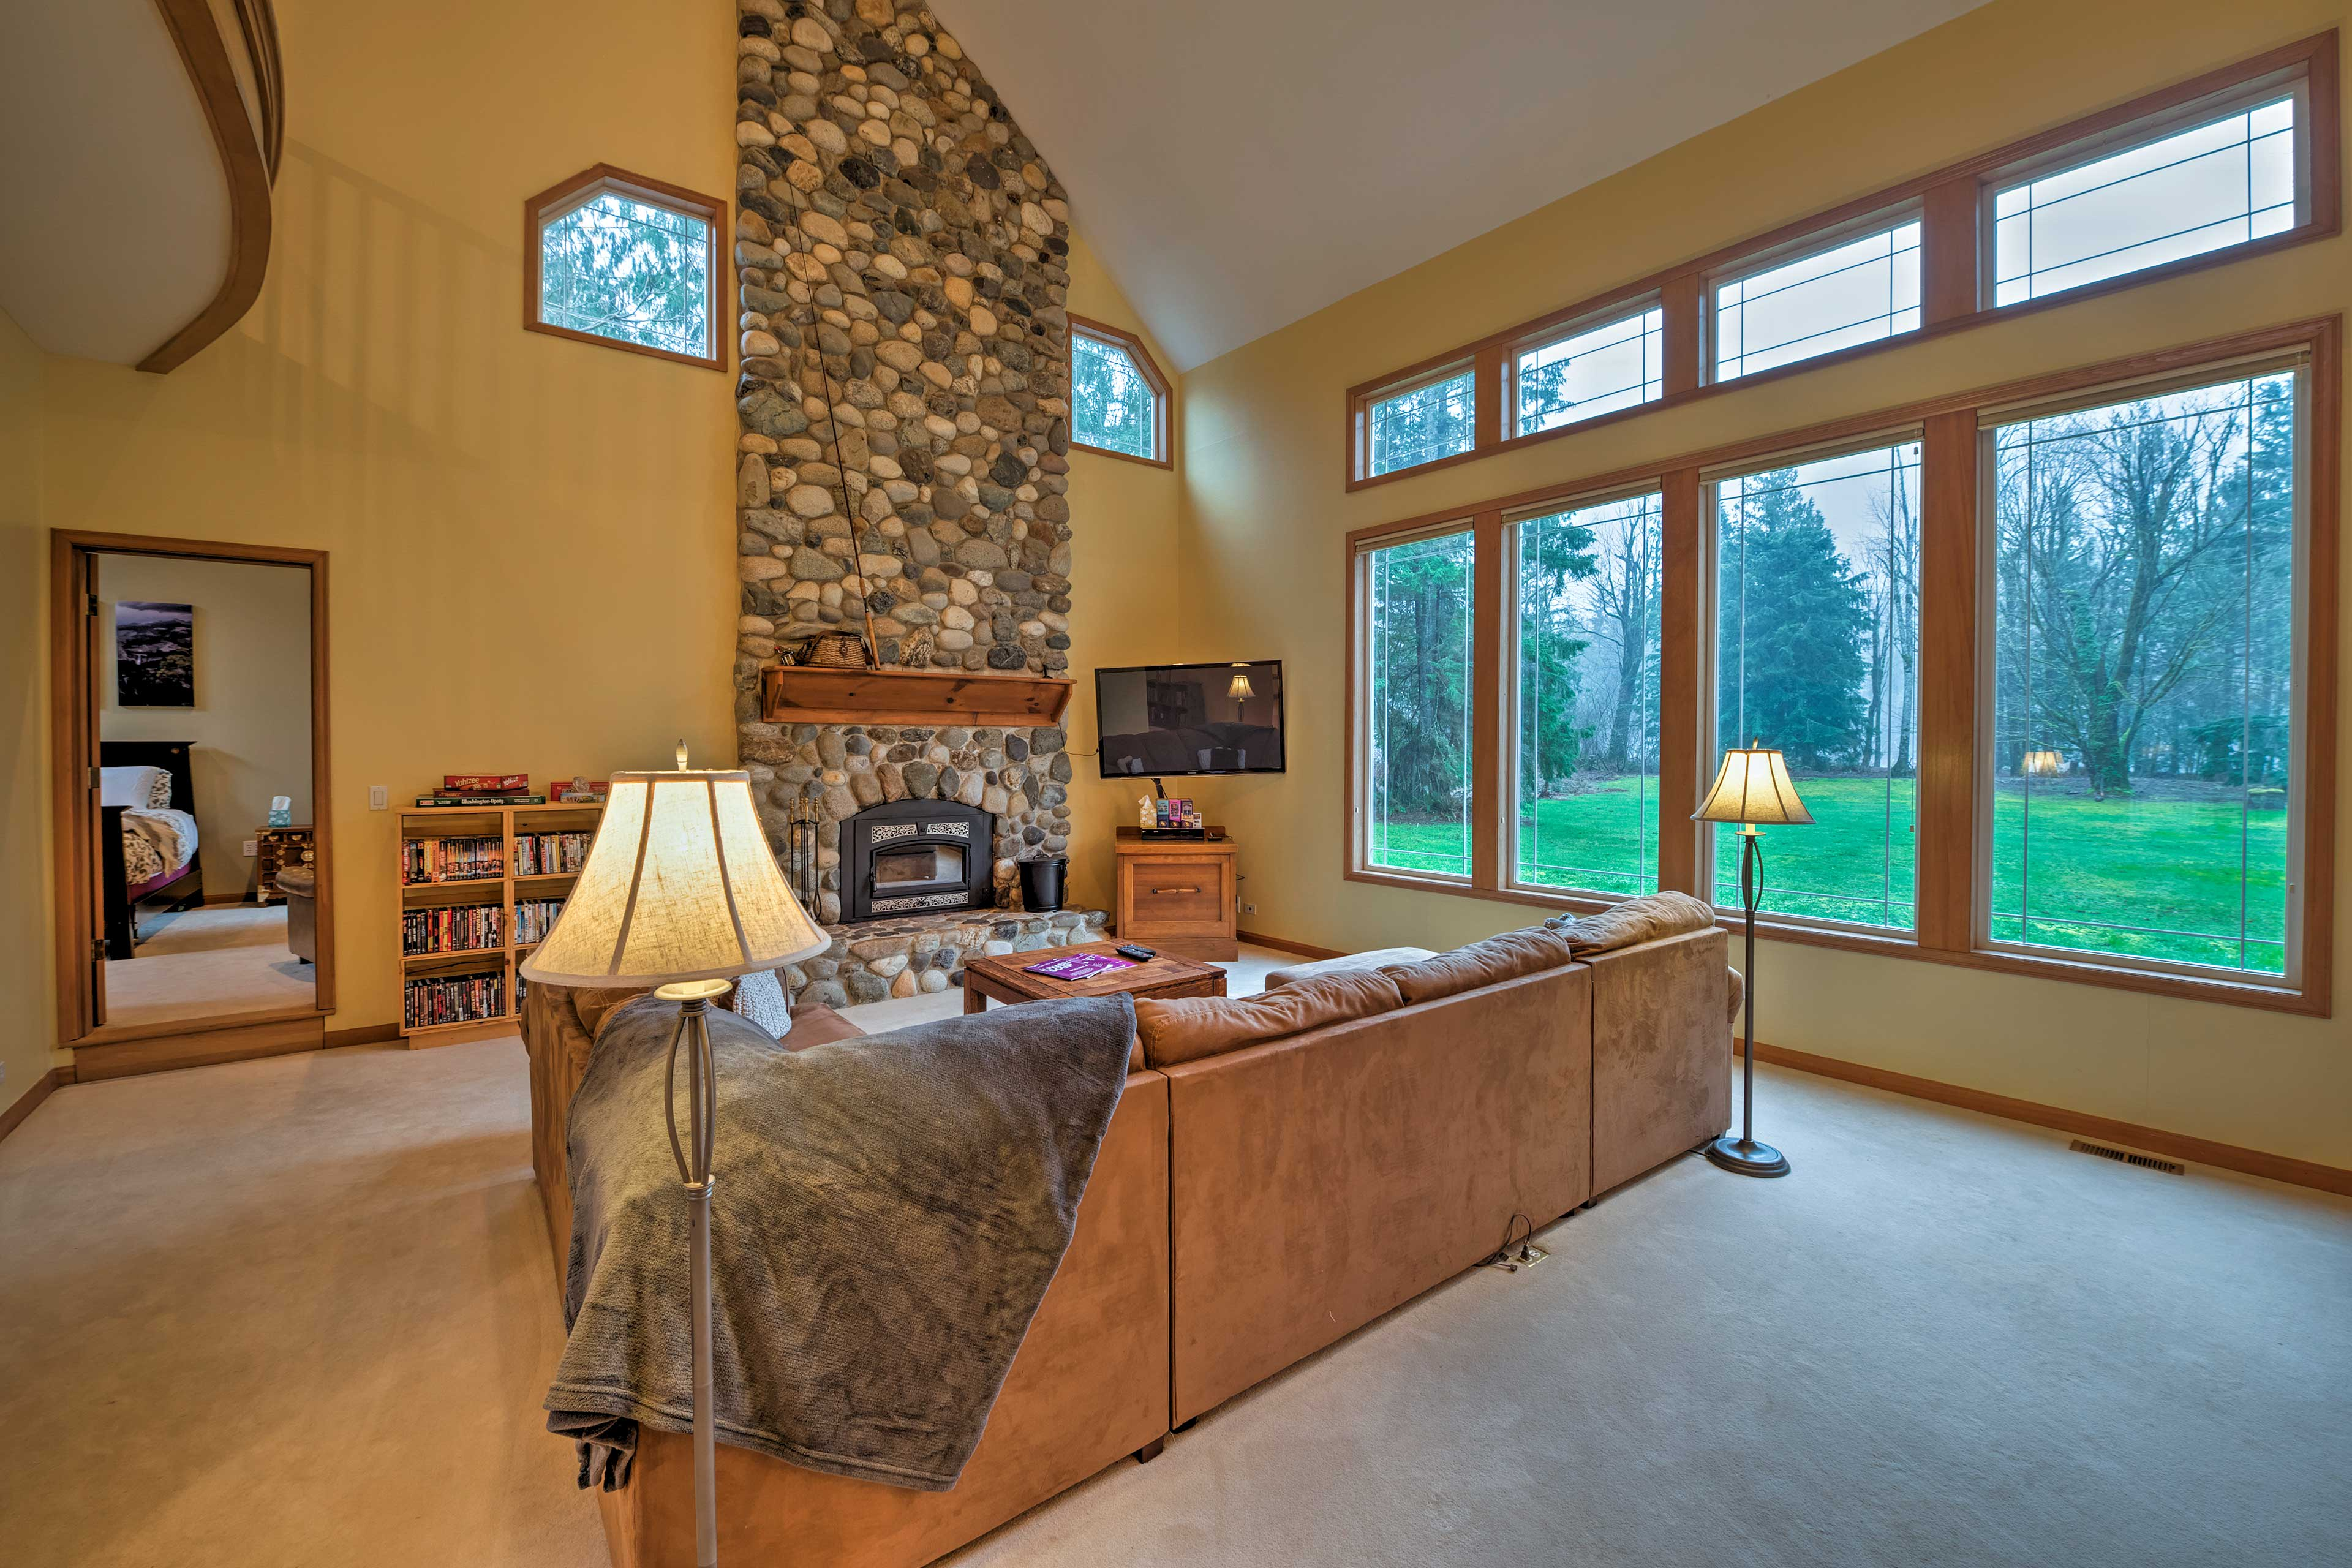 The 2,750-square-foot-home is the perfect combination of luxury and comfortable.